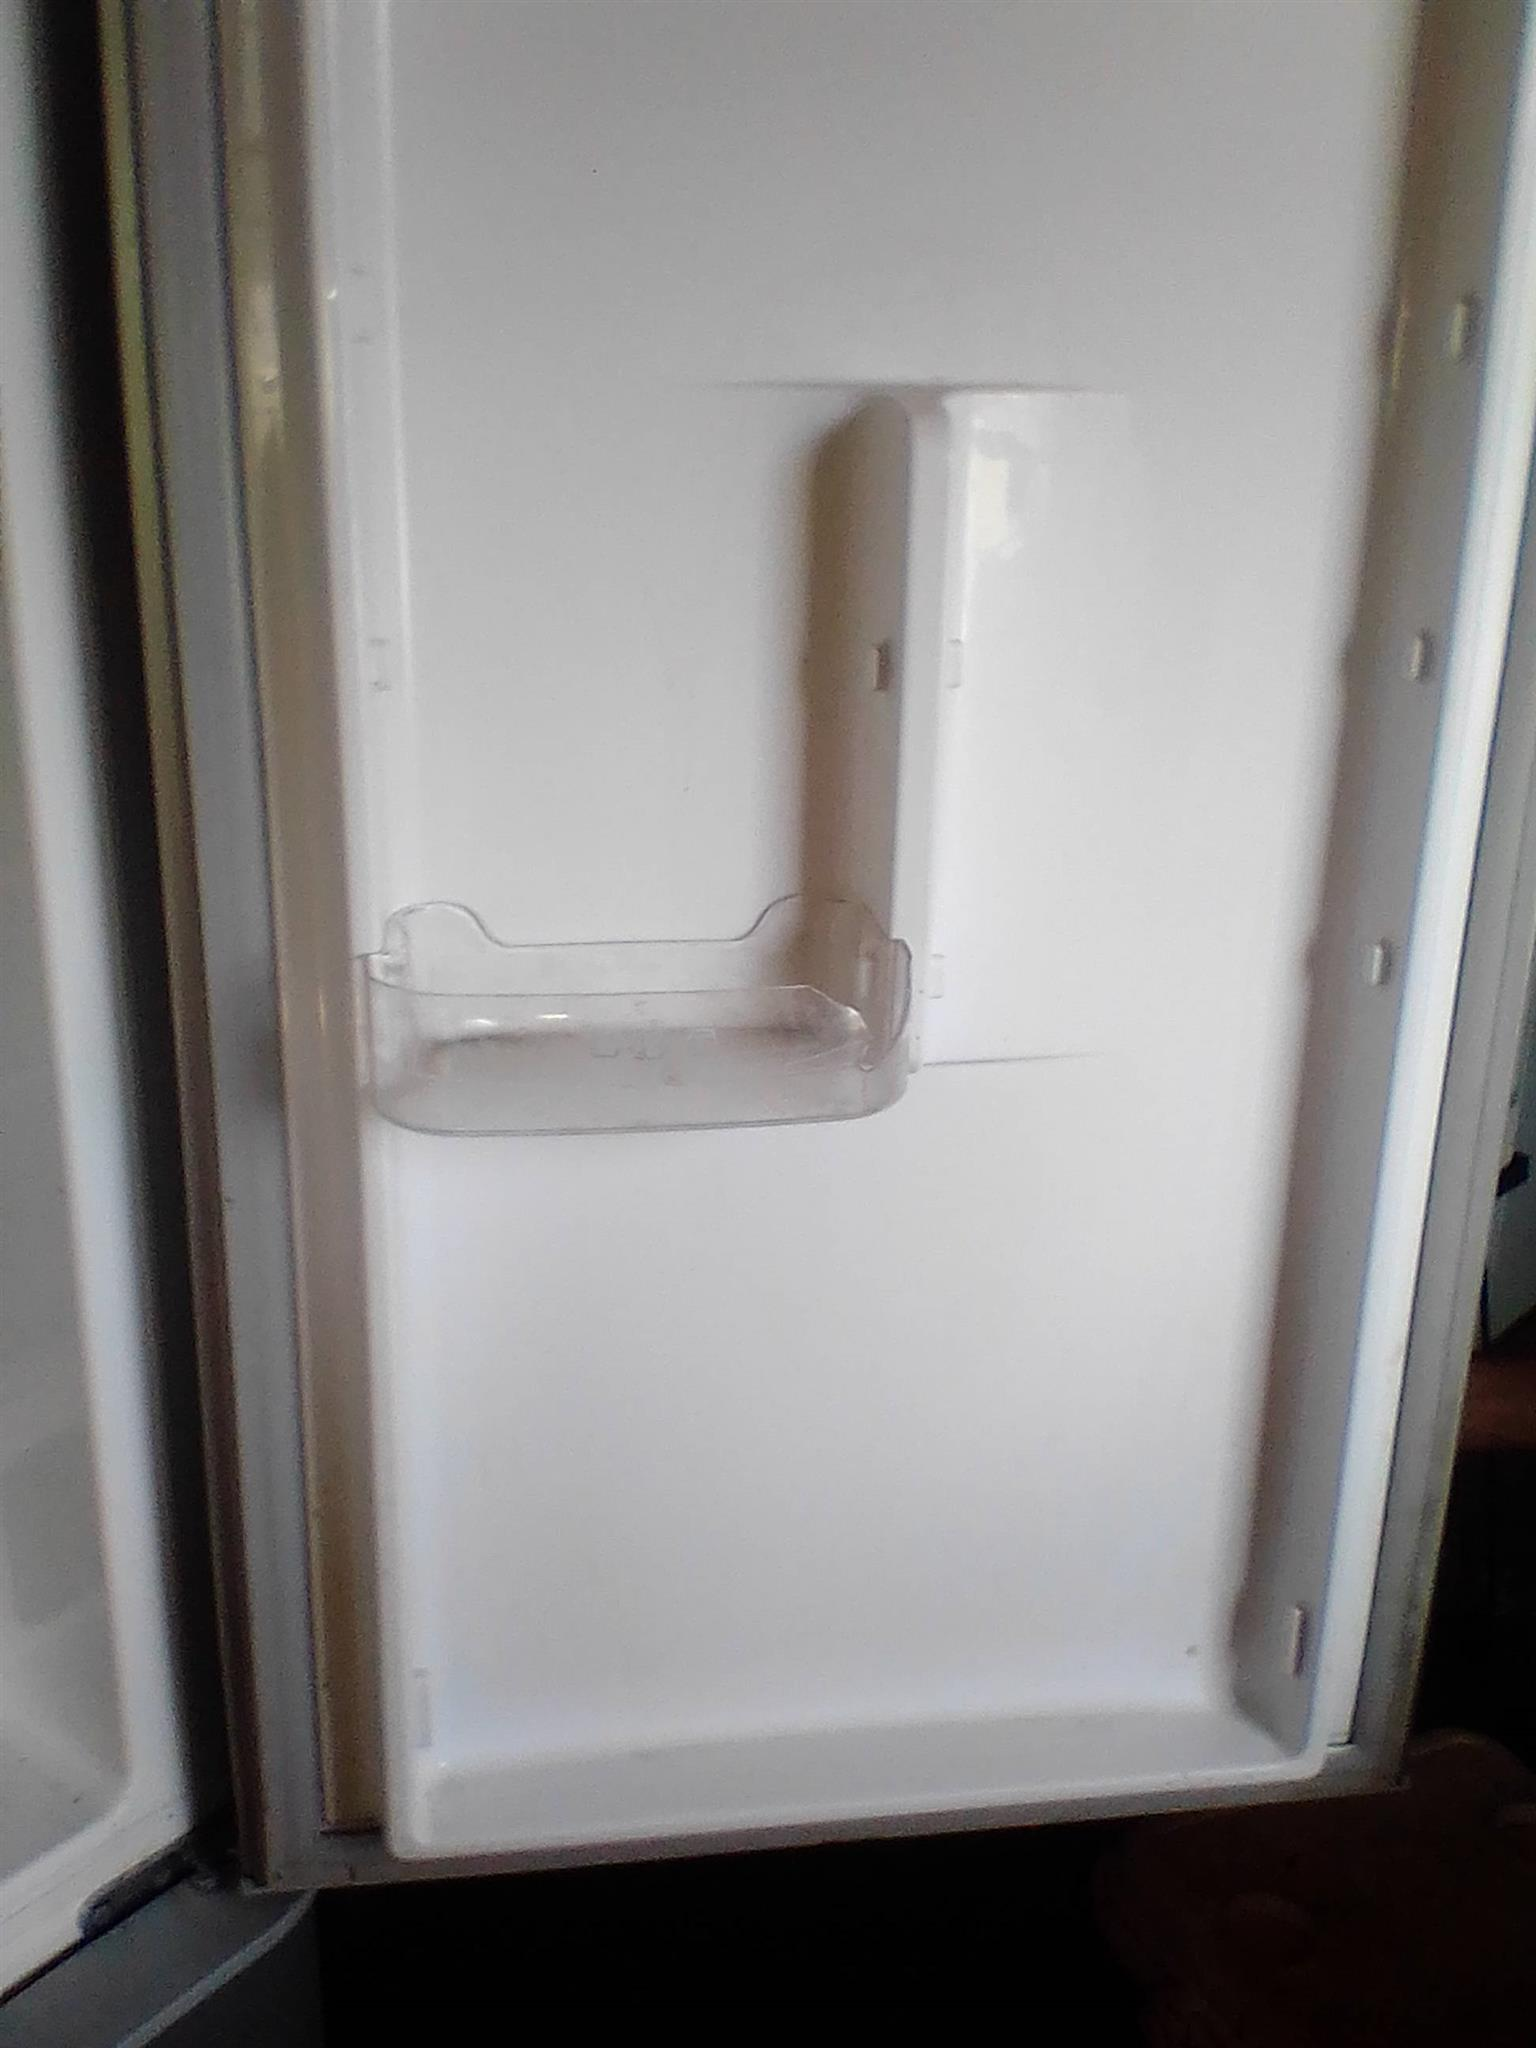 Want to sell or swap my fridge for a gas fridge or freezer